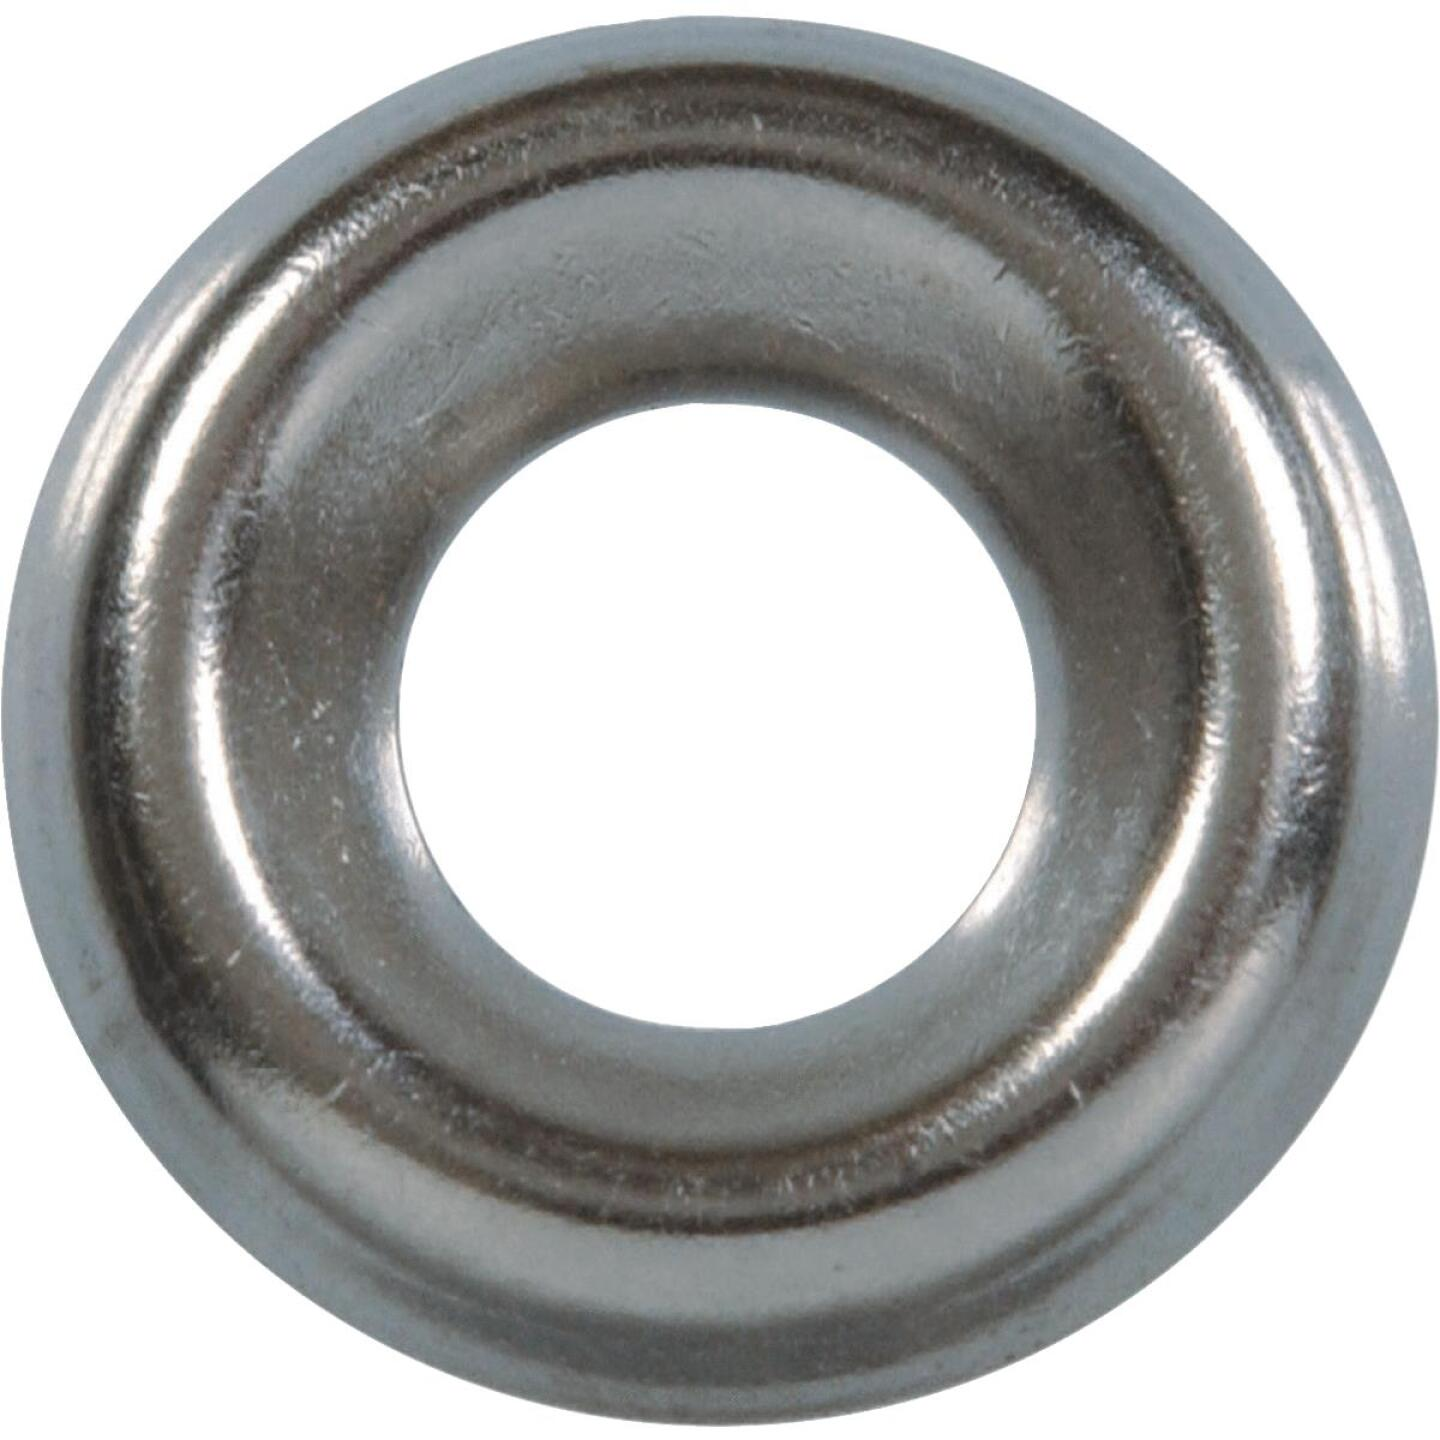 Hillman #10 Steel Nickel Plated Finishing Washer (10 Ct.) Image 1